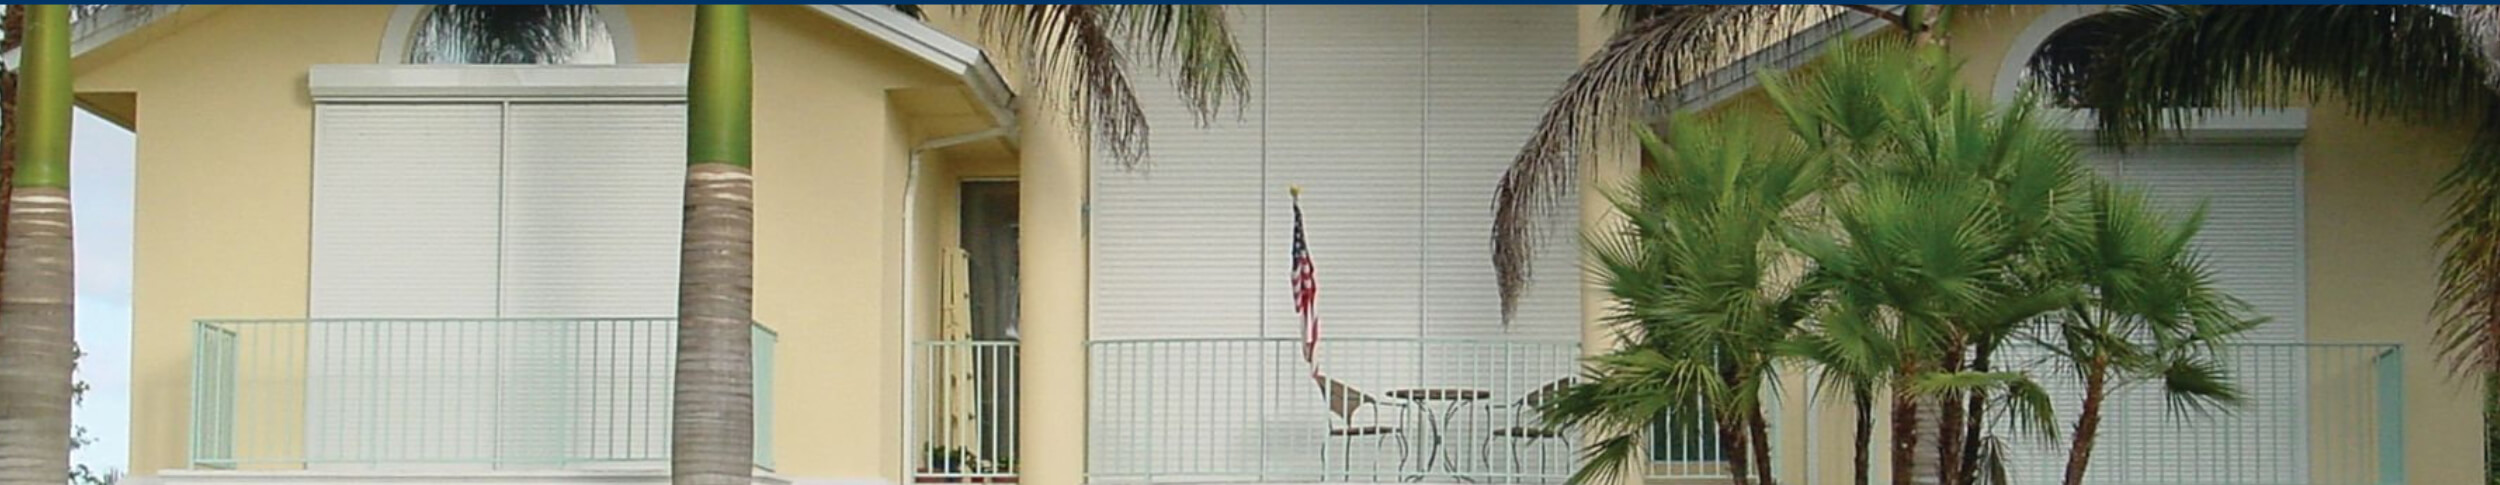 HURRICANE PRODUCTS|Roll Shutter Systems